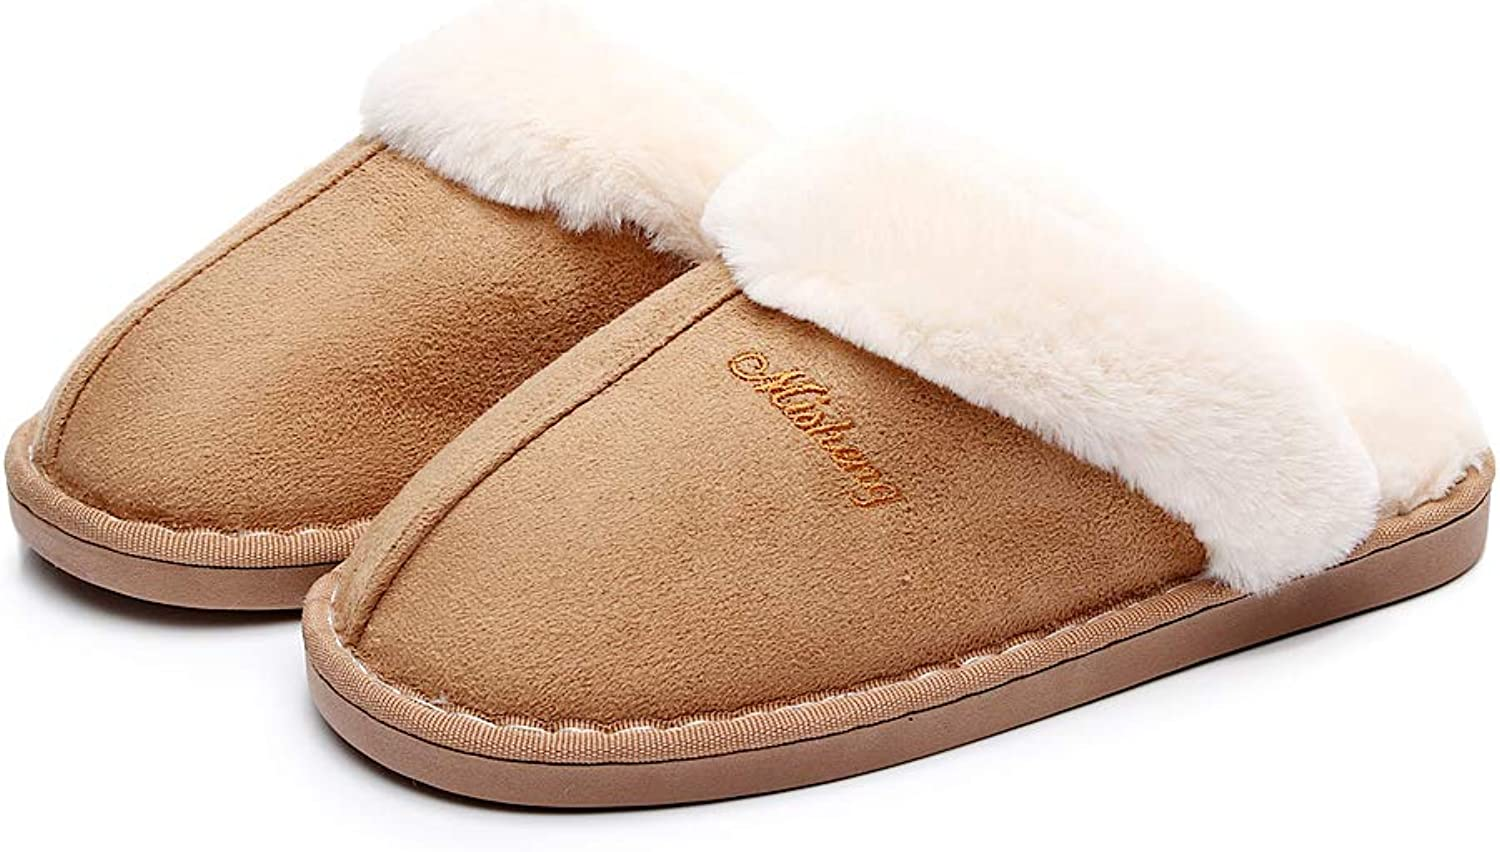 HAVINA Womens Slipper Memory Foam Fluffy Slip-On House Suede Fur Lined Anti-Skid Sole,Indoor & Outdoor